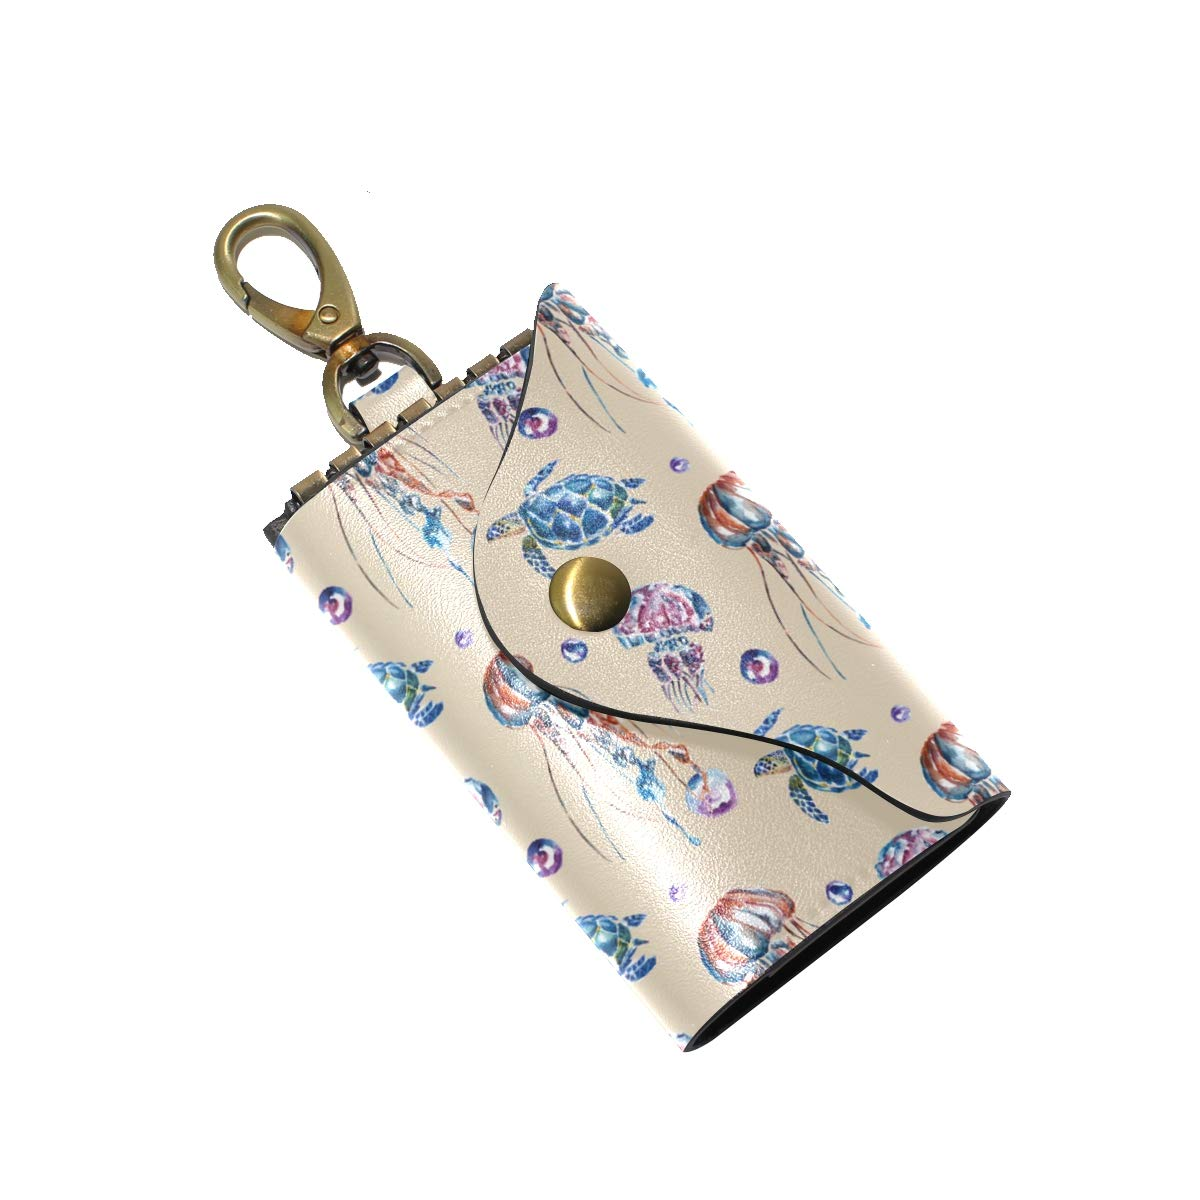 KEAKIA Jellyfish And Turtles Pattern Leather Key Case Wallets Tri-fold Key Holder Keychains with 6 Hooks 2 Slot Snap Closure for Men Women